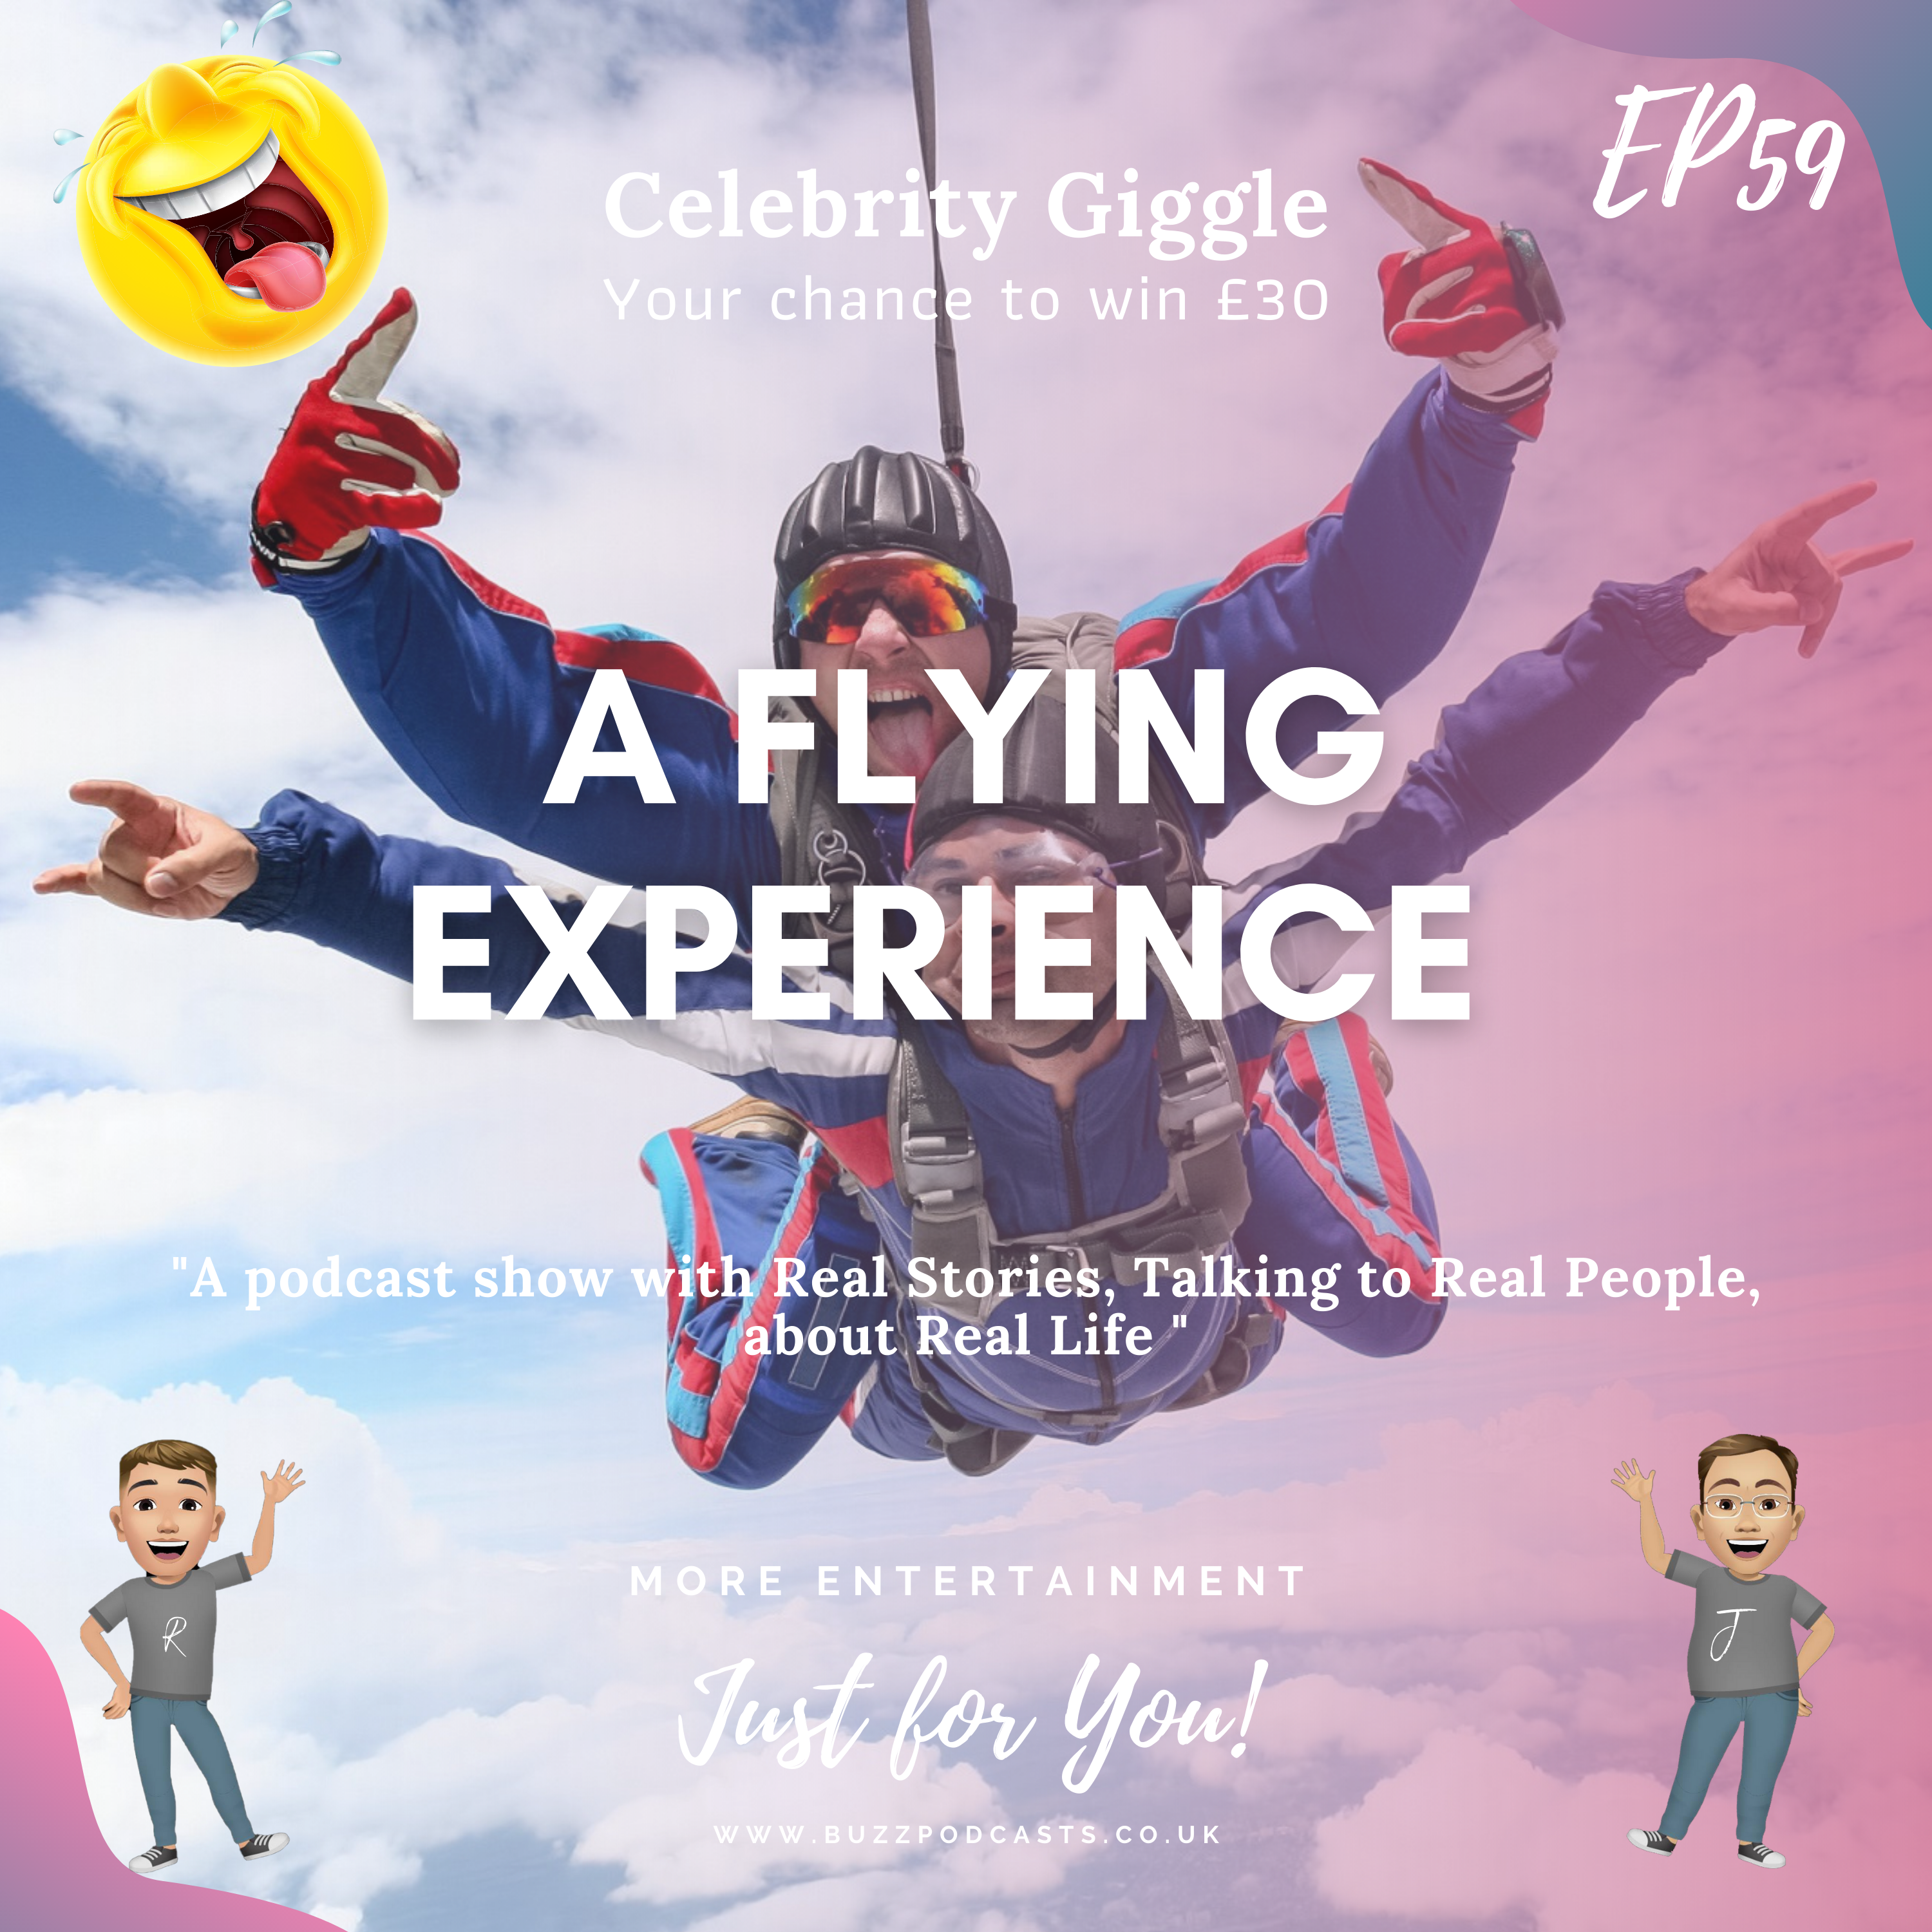 A Flying Experience on this weekly Experience show